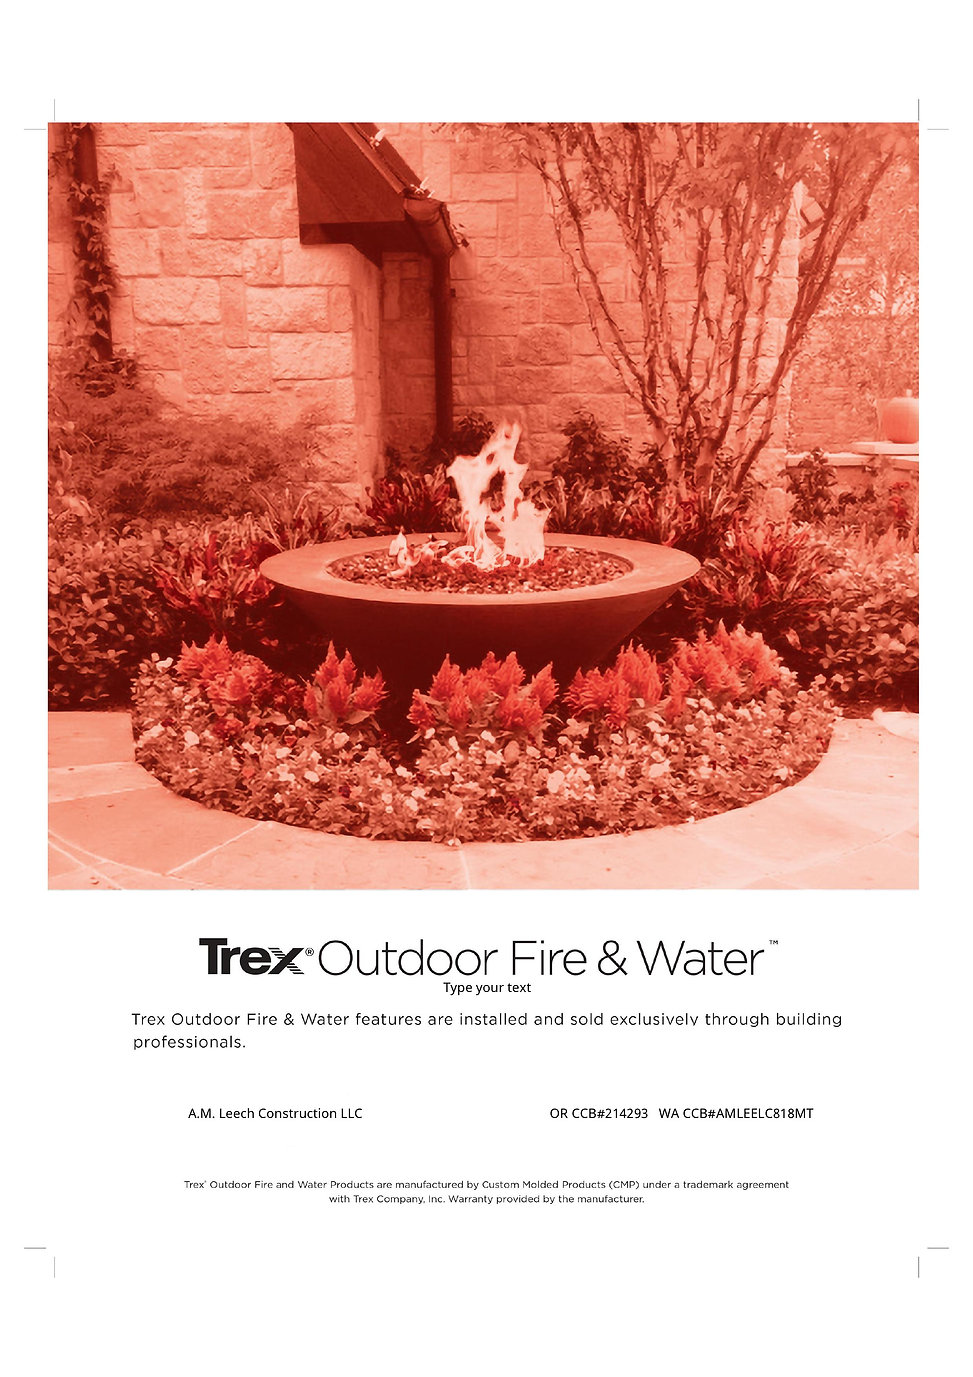 Trex fire and water 12.jpg